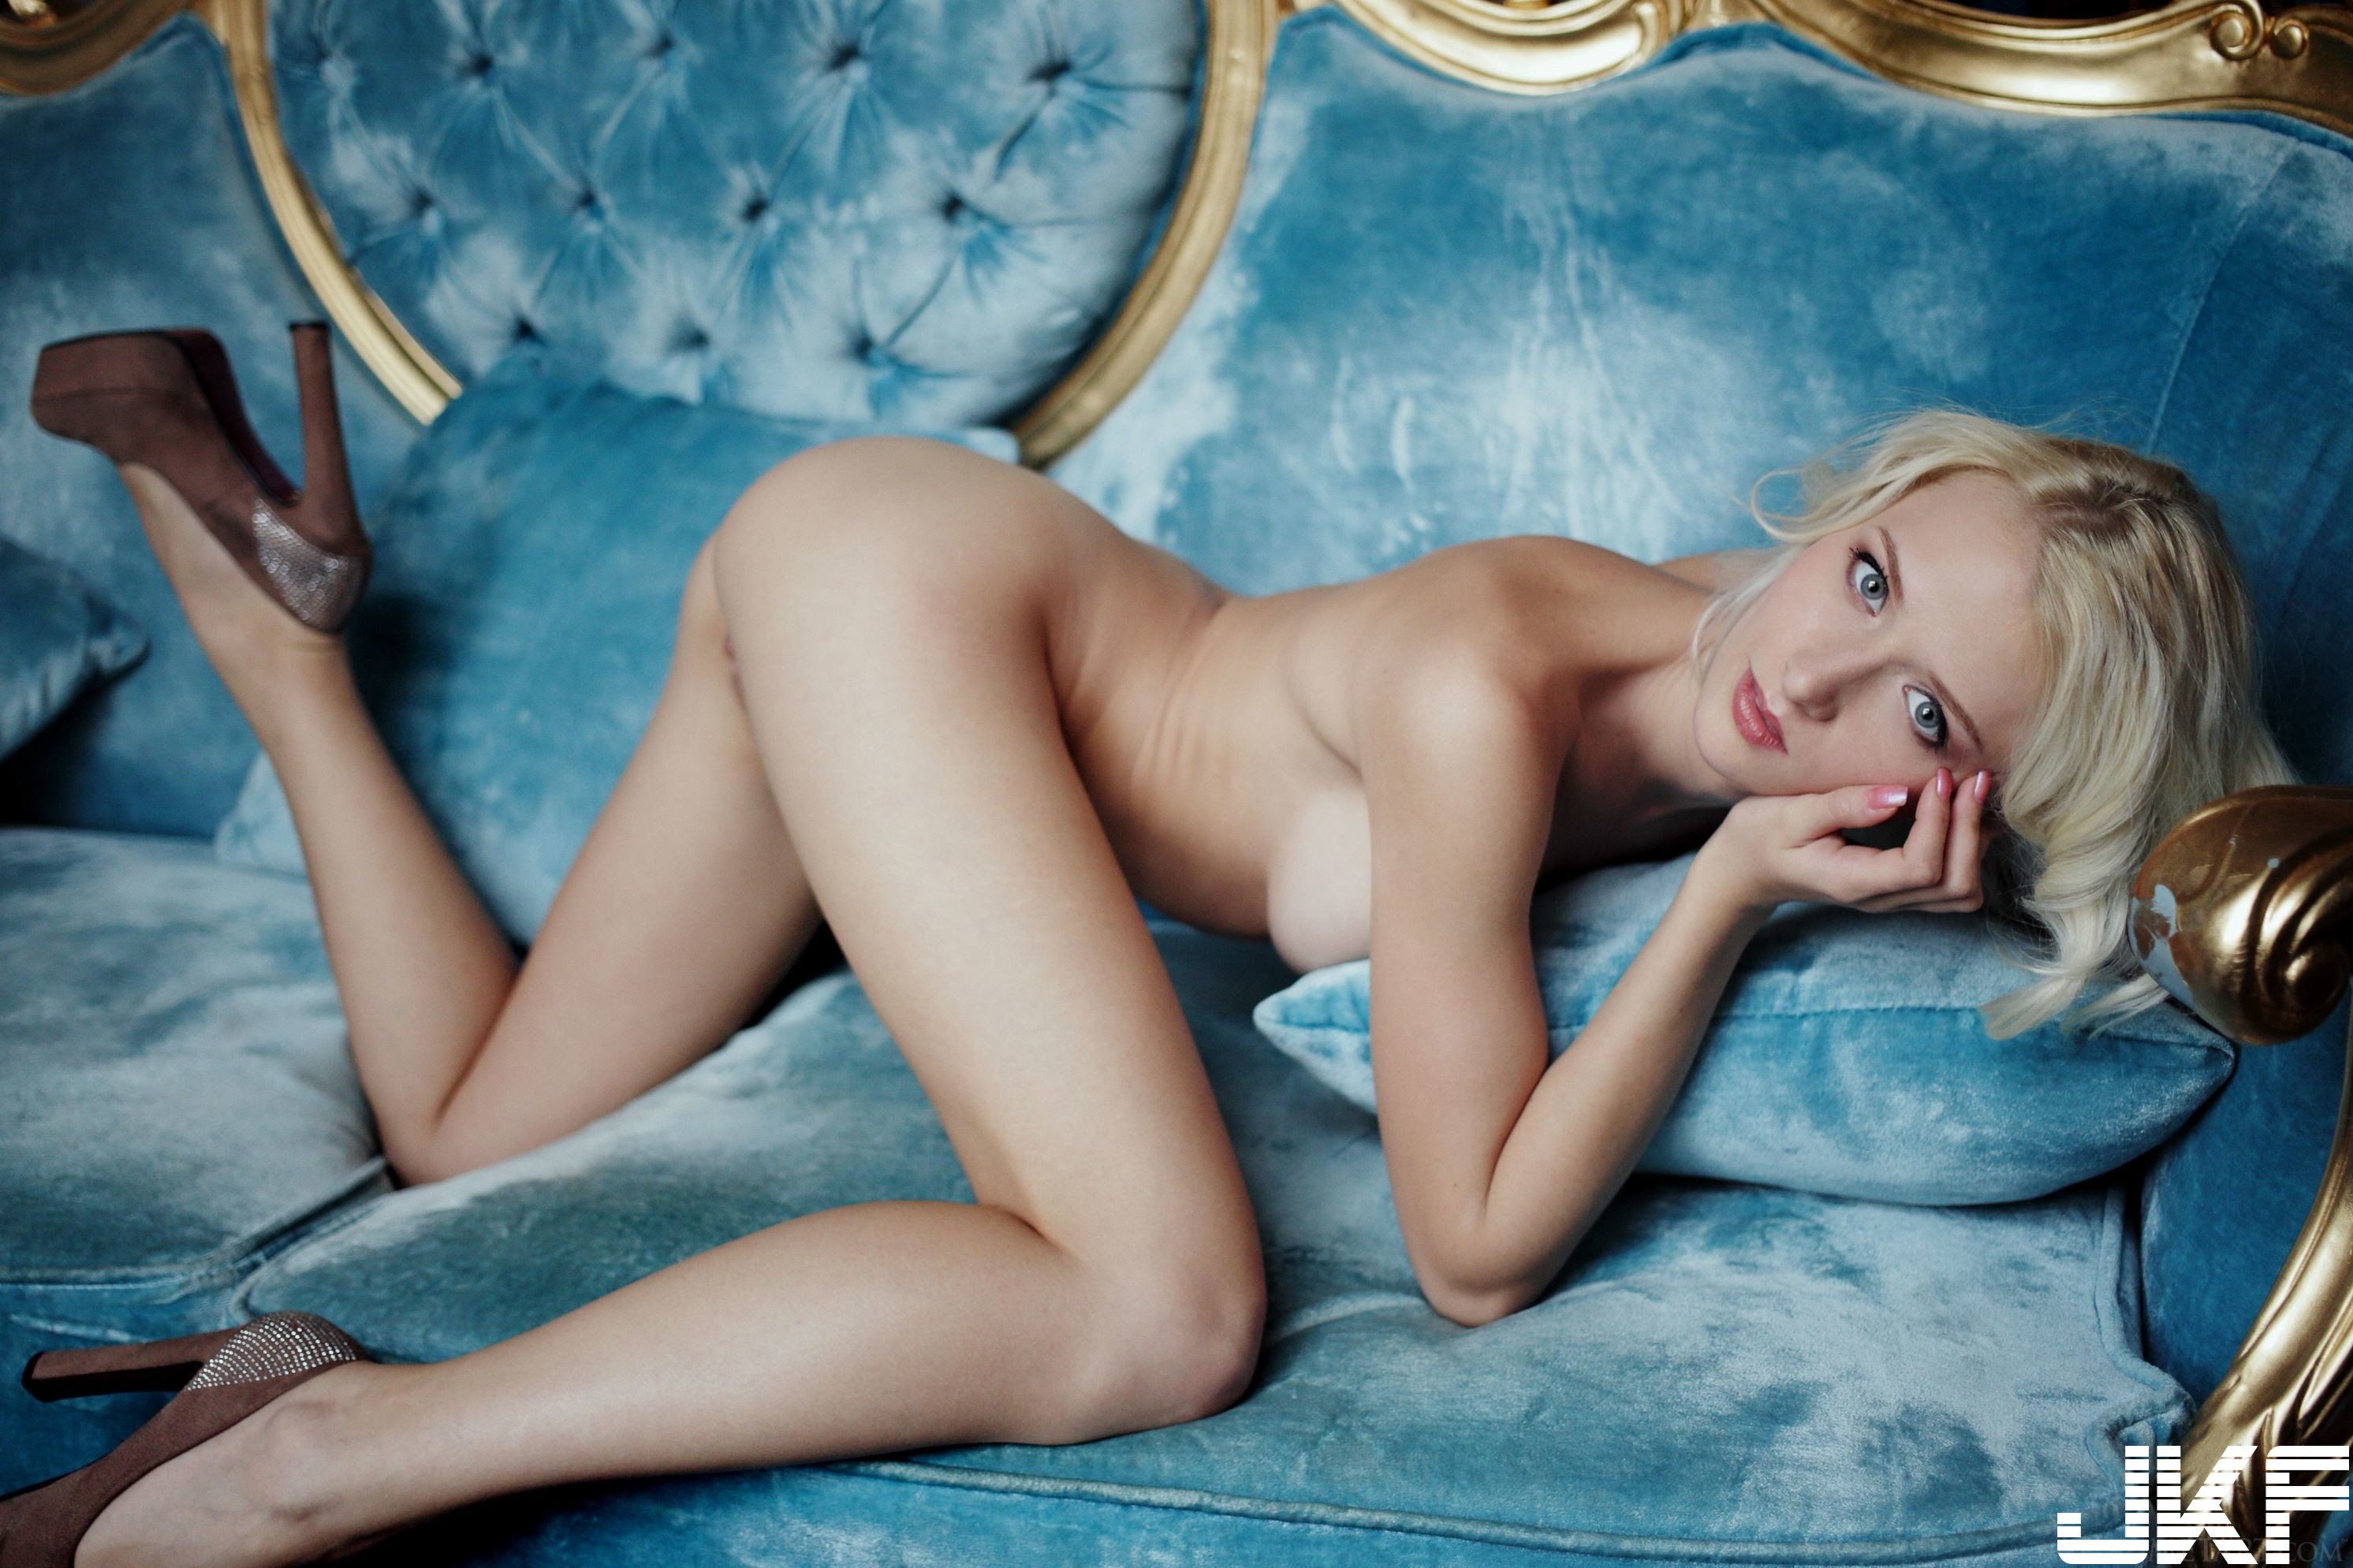 Shaved-Blonde-Adelia-B-with-Thick-Nipples-19.jpg